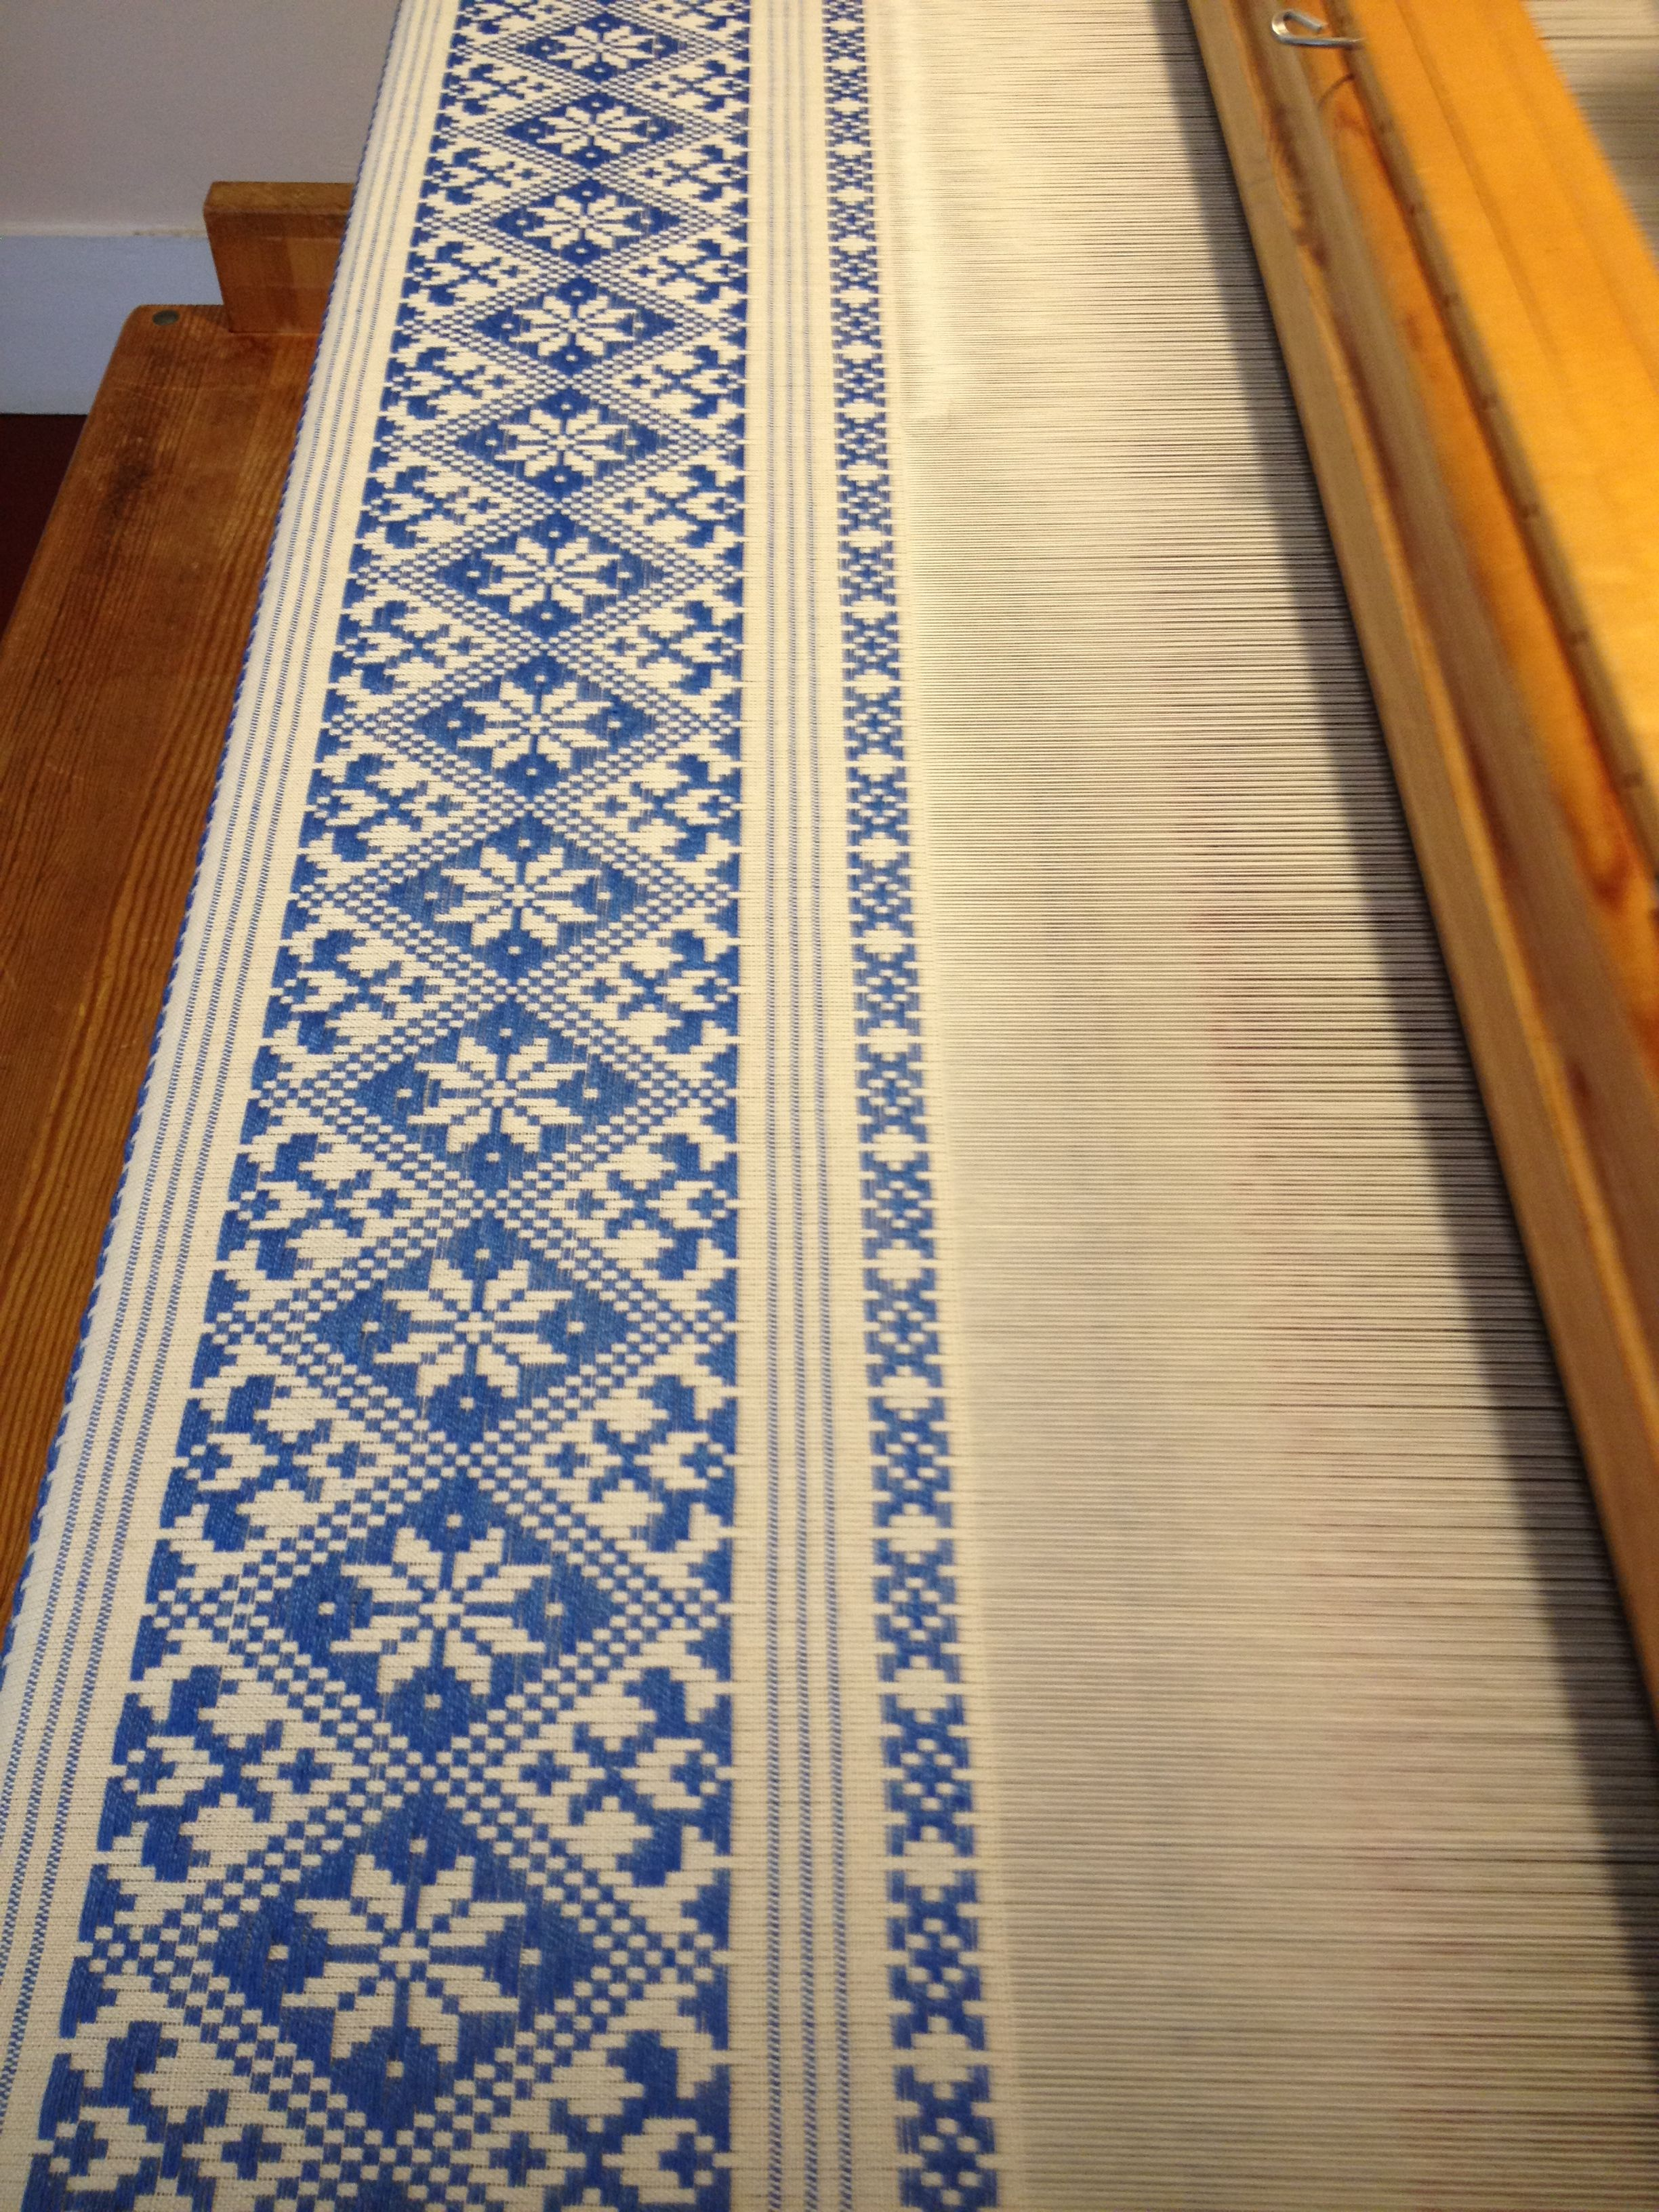 A Woven Dress Featuring An Allover: Opphamta Pattern, Woven On A Drawloom At Vavstuga In 16/2